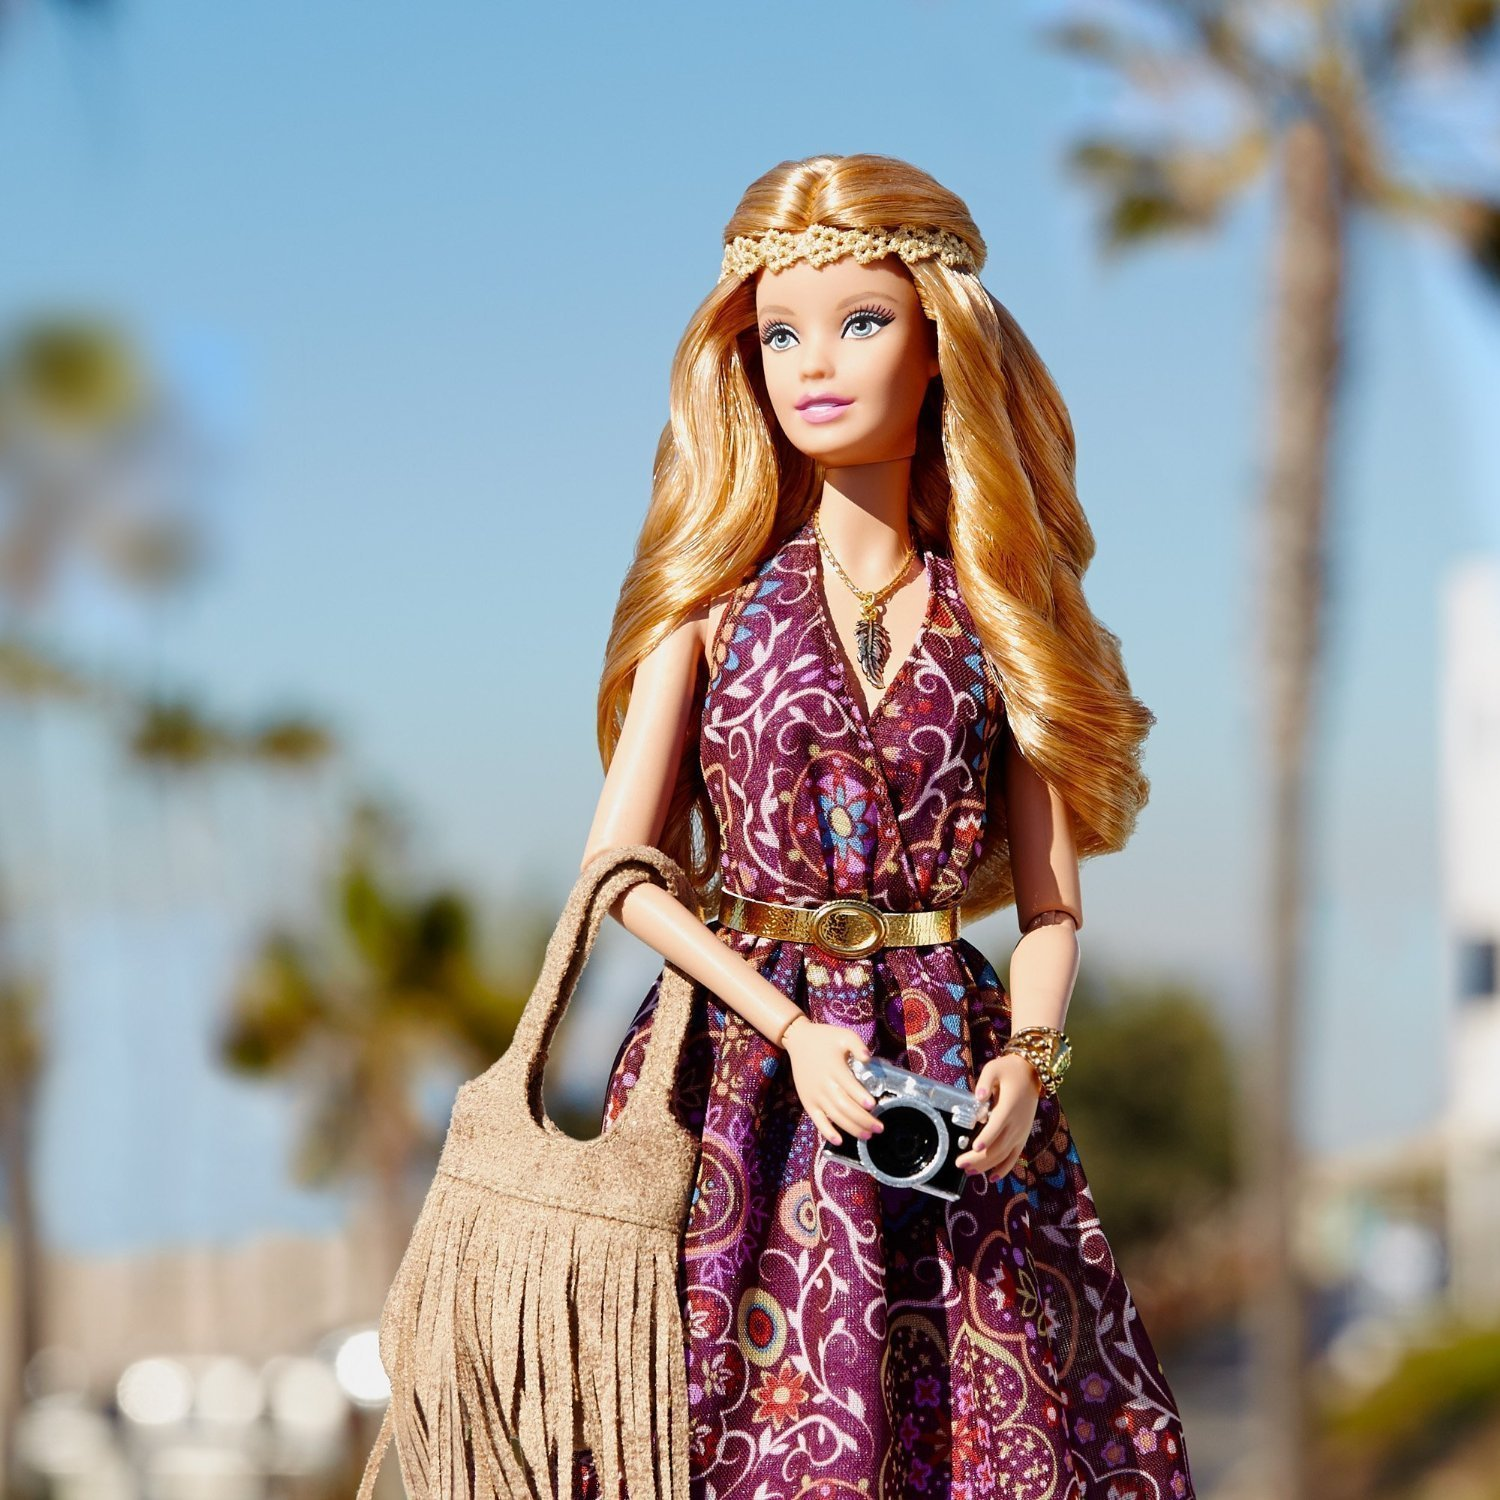 The Barbie Look: Music Festival - Barbie Doll image